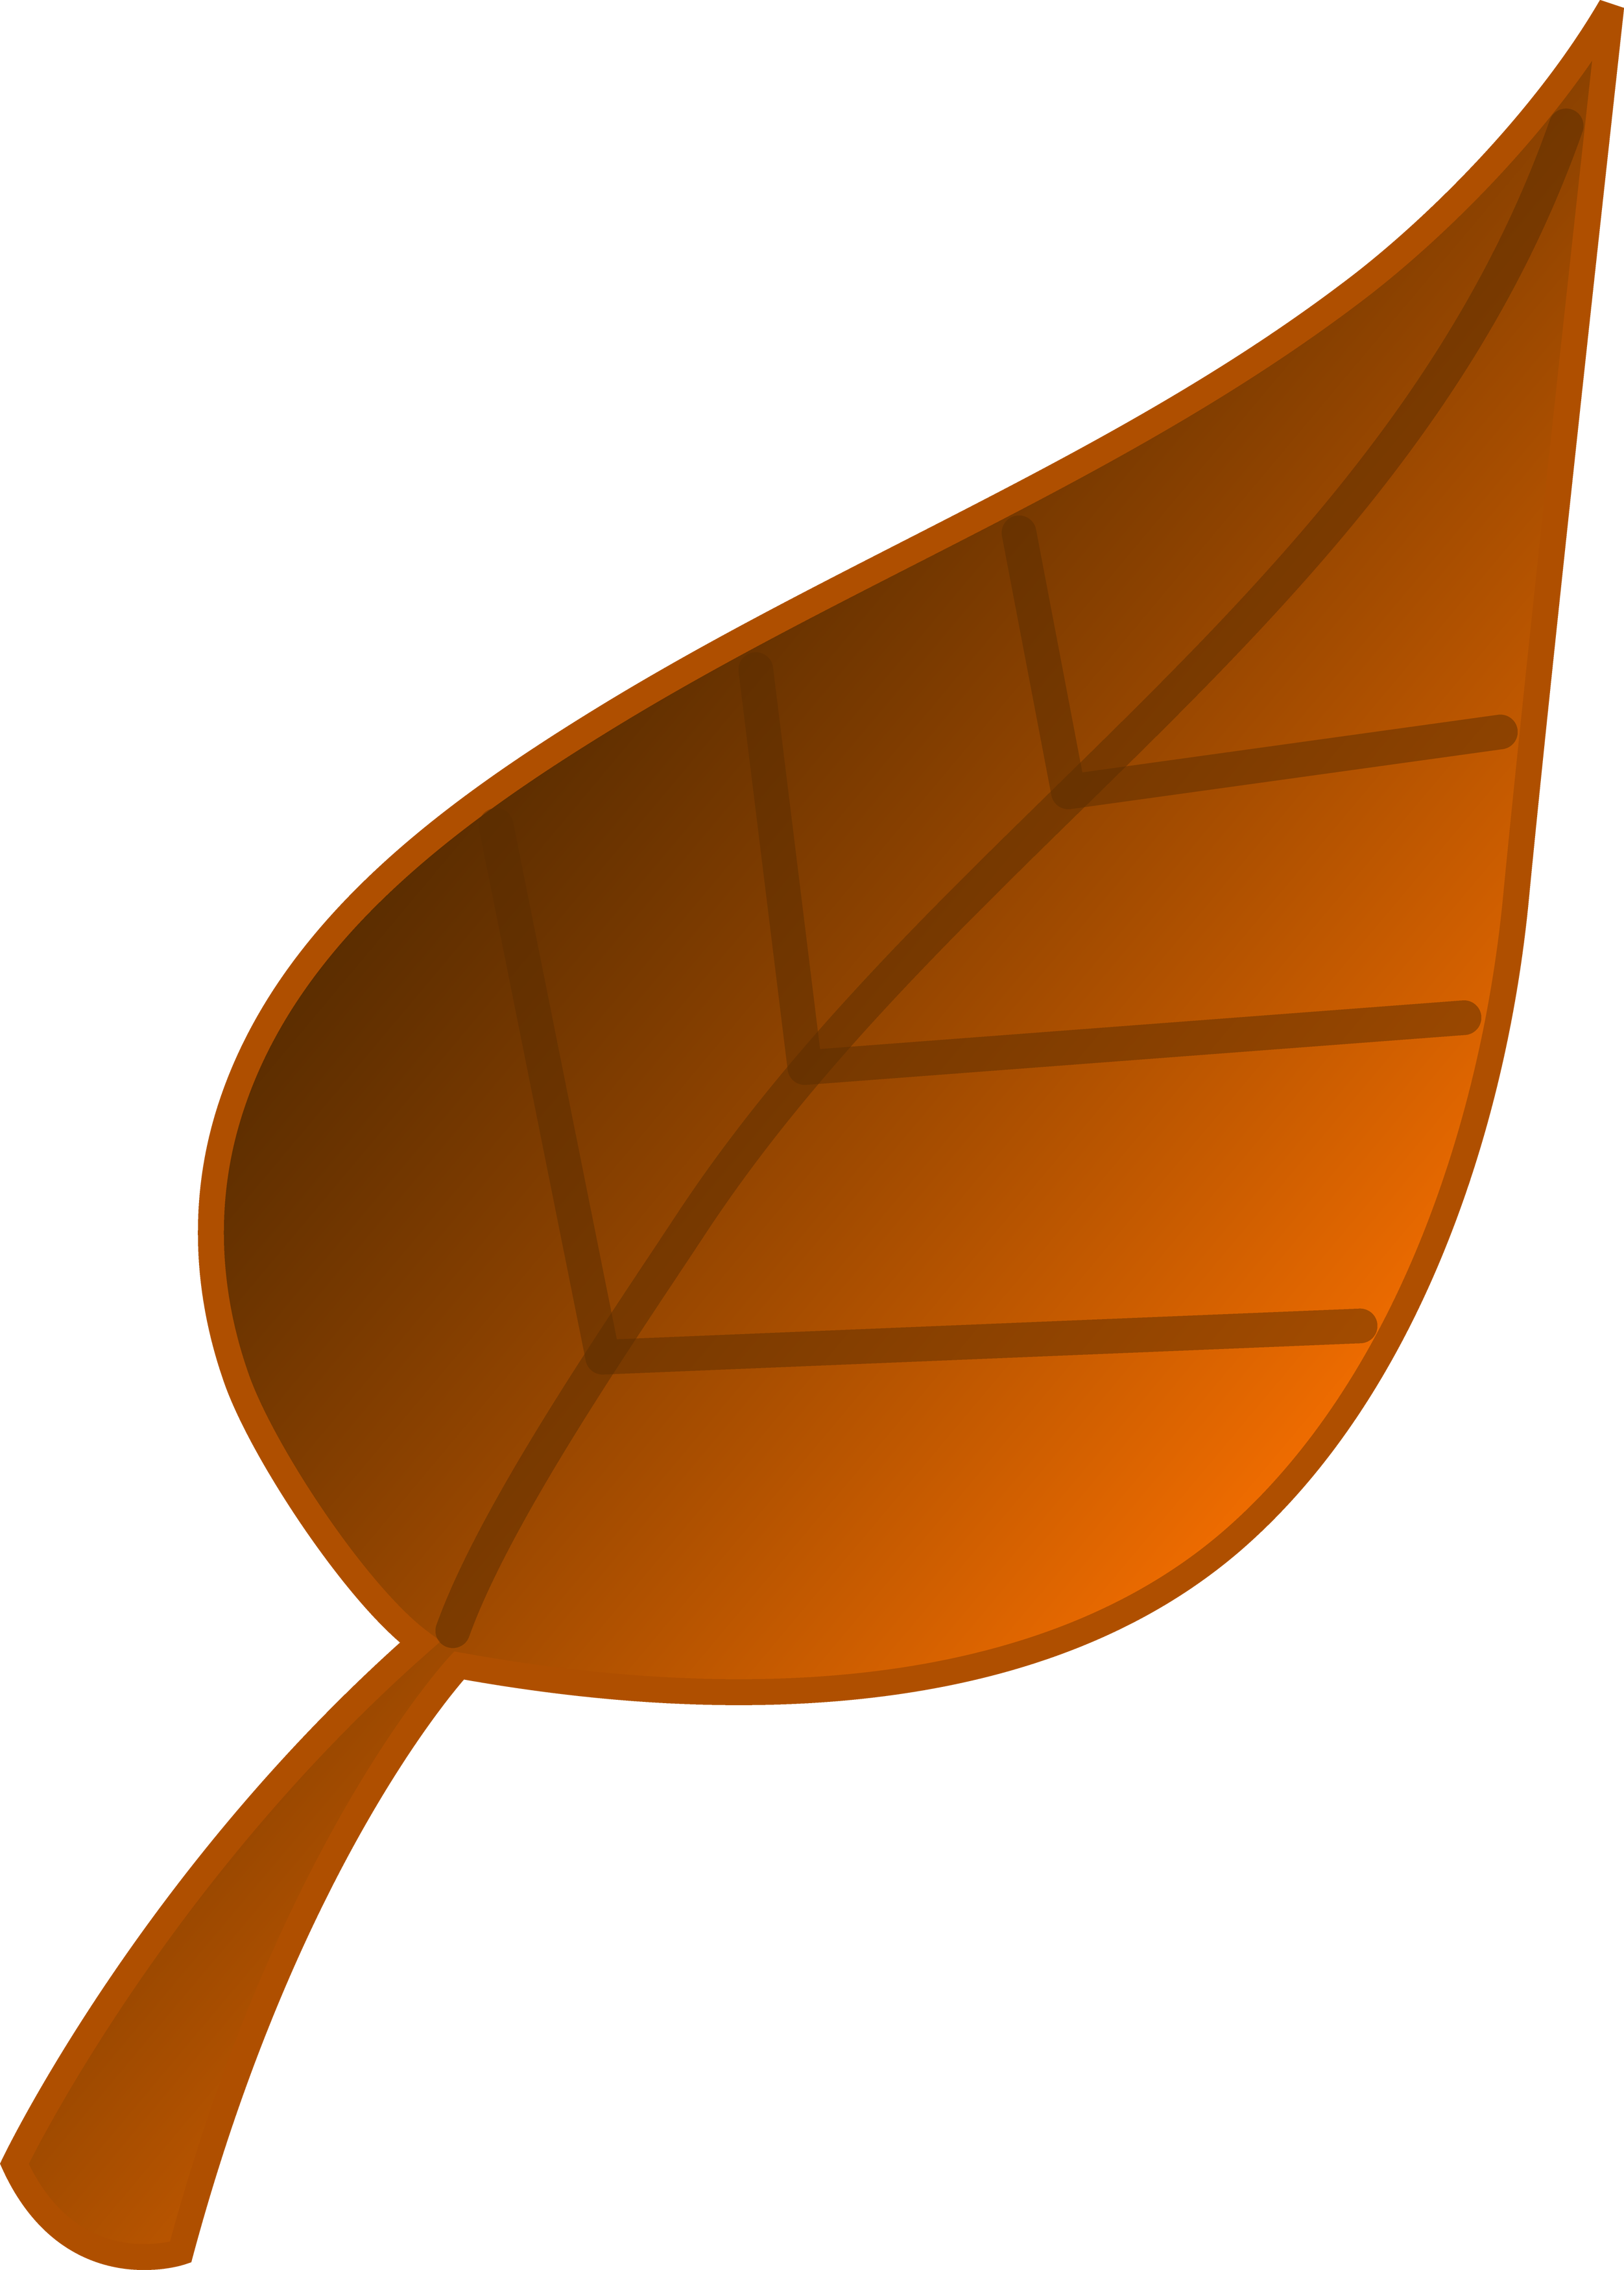 Brown Fall Leaf Clipart | Clipart Panda - Free Clipart Images